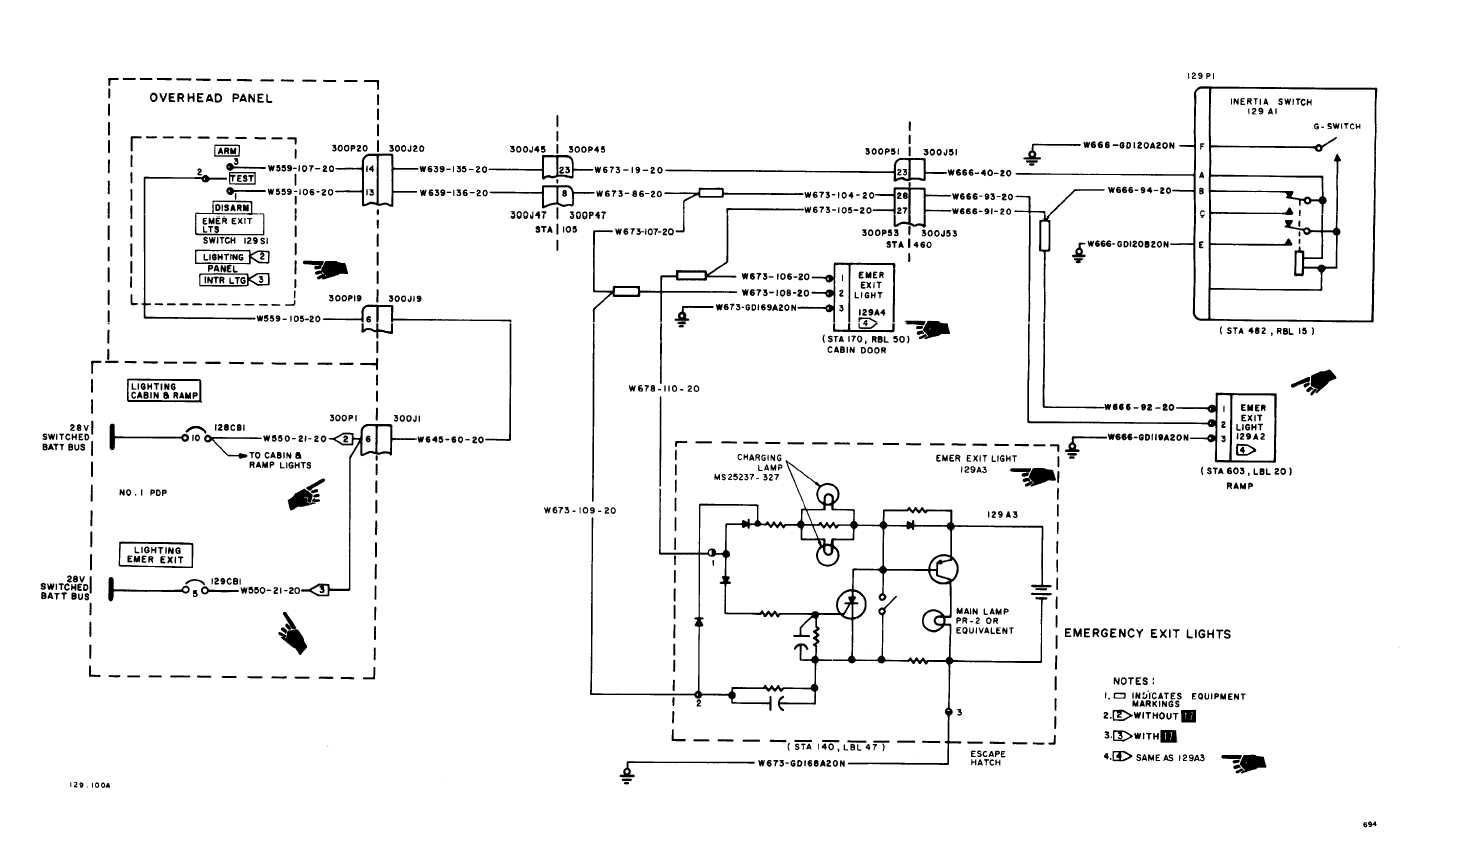 Wiring Diagram For Light : Emergency exit lights wiring diagram